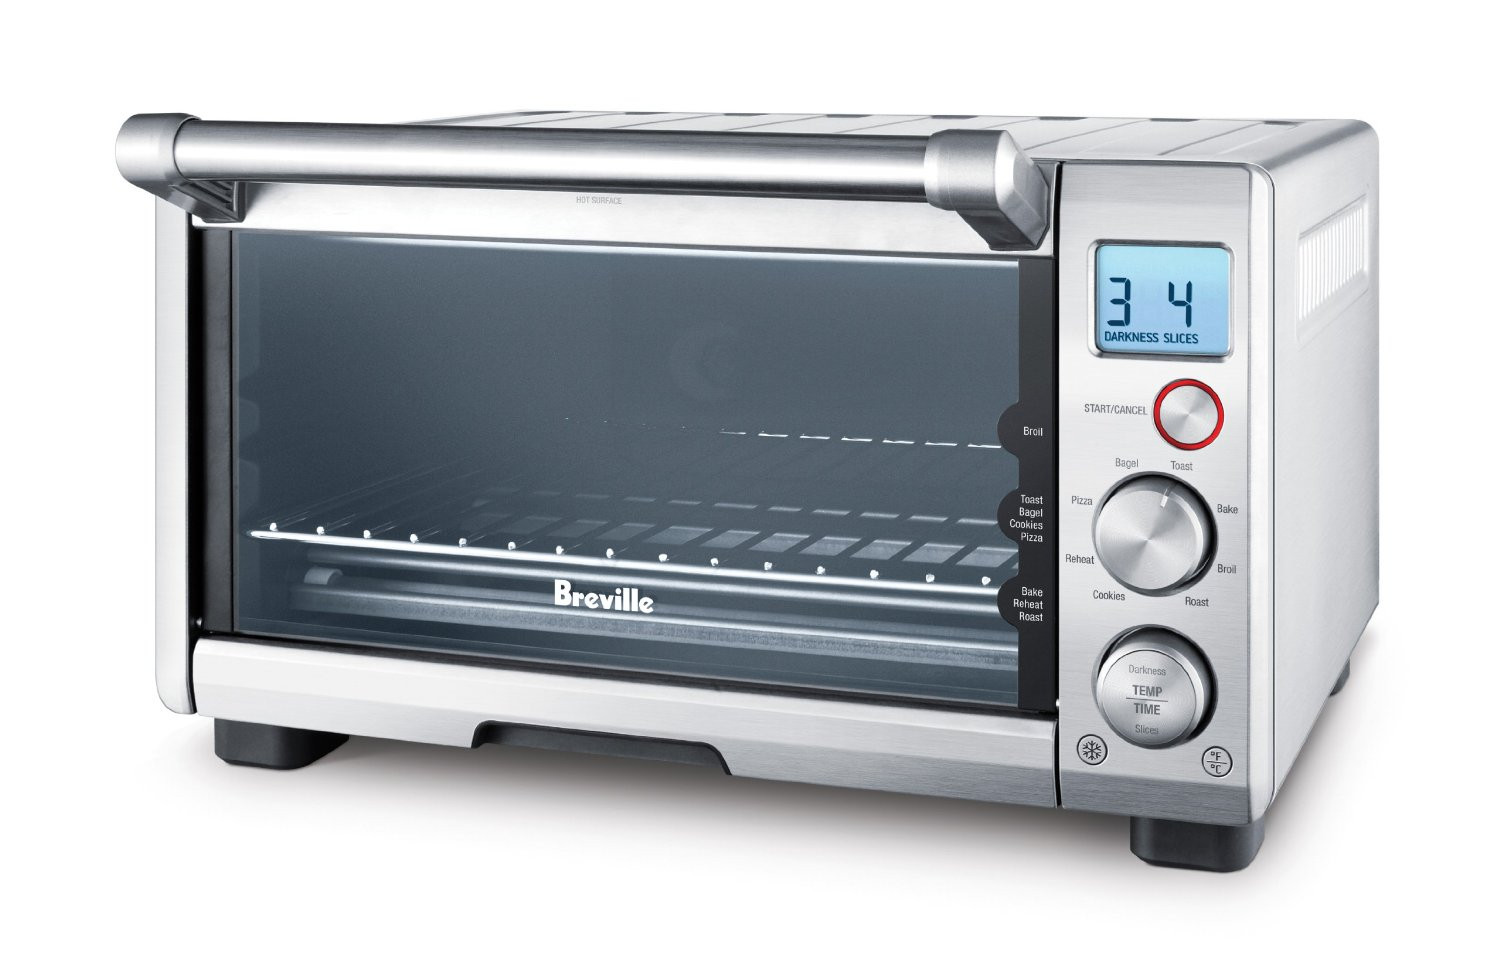 oven best beach toaster small hamilton top reviews stainless steel in convection ovens